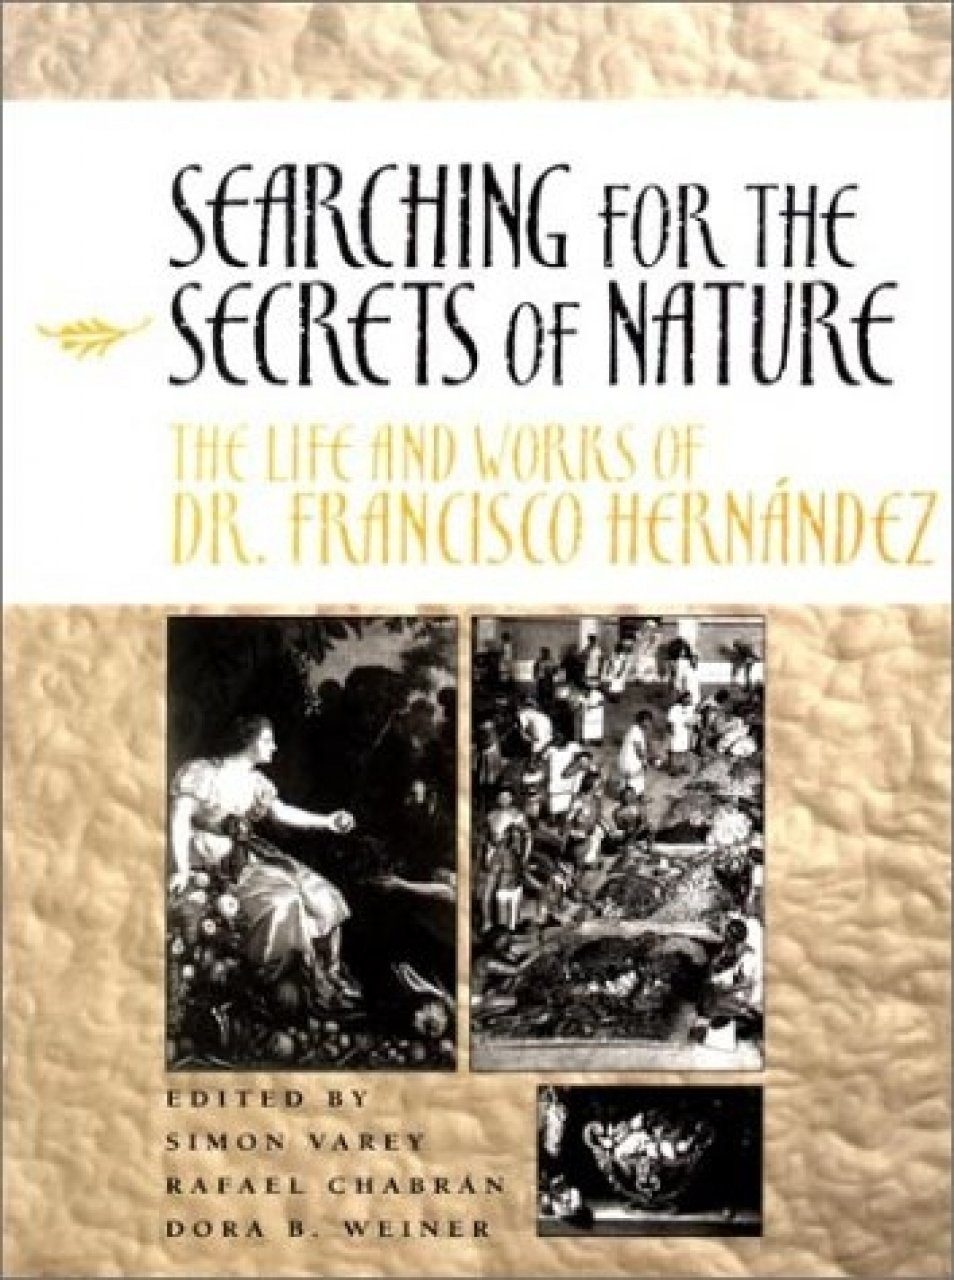 Searching for the Secrets of Nature: The Life and Works of Dr Francisco Hernandez